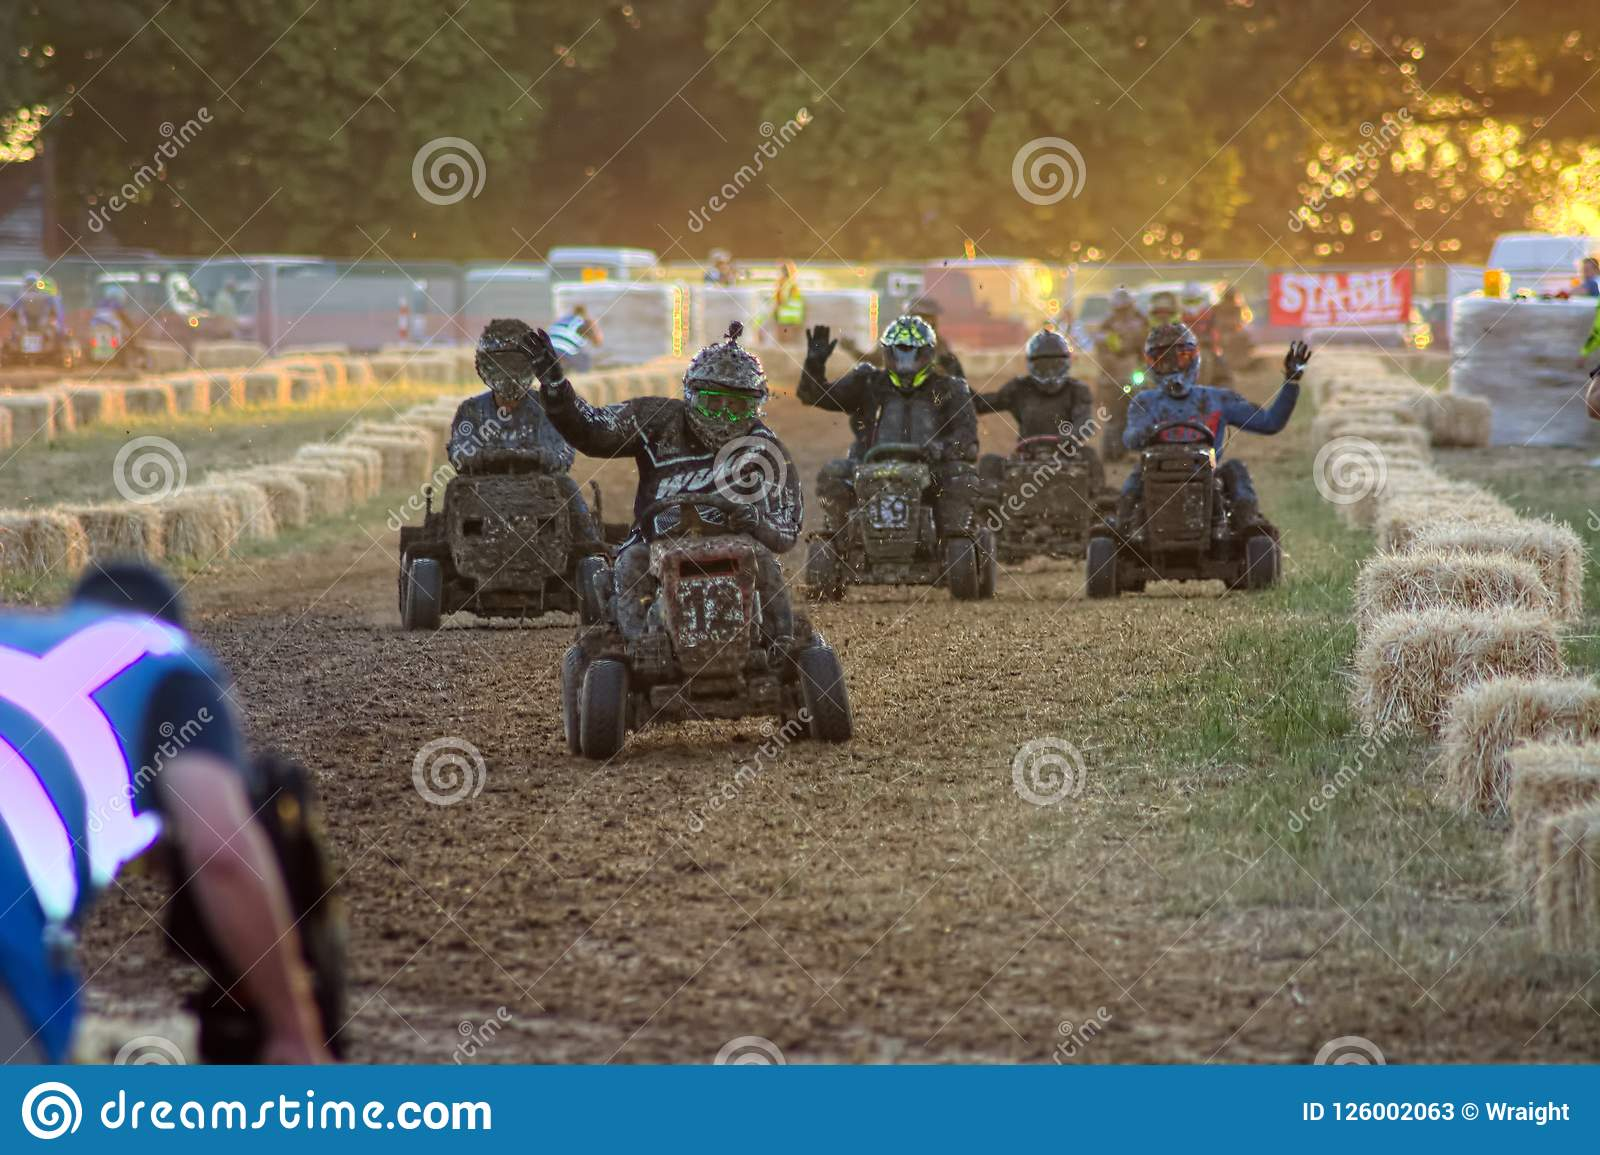 Lawn Mower Racing >> Lawn Mower Racing Editorial Stock Photo Image Of Healthcare